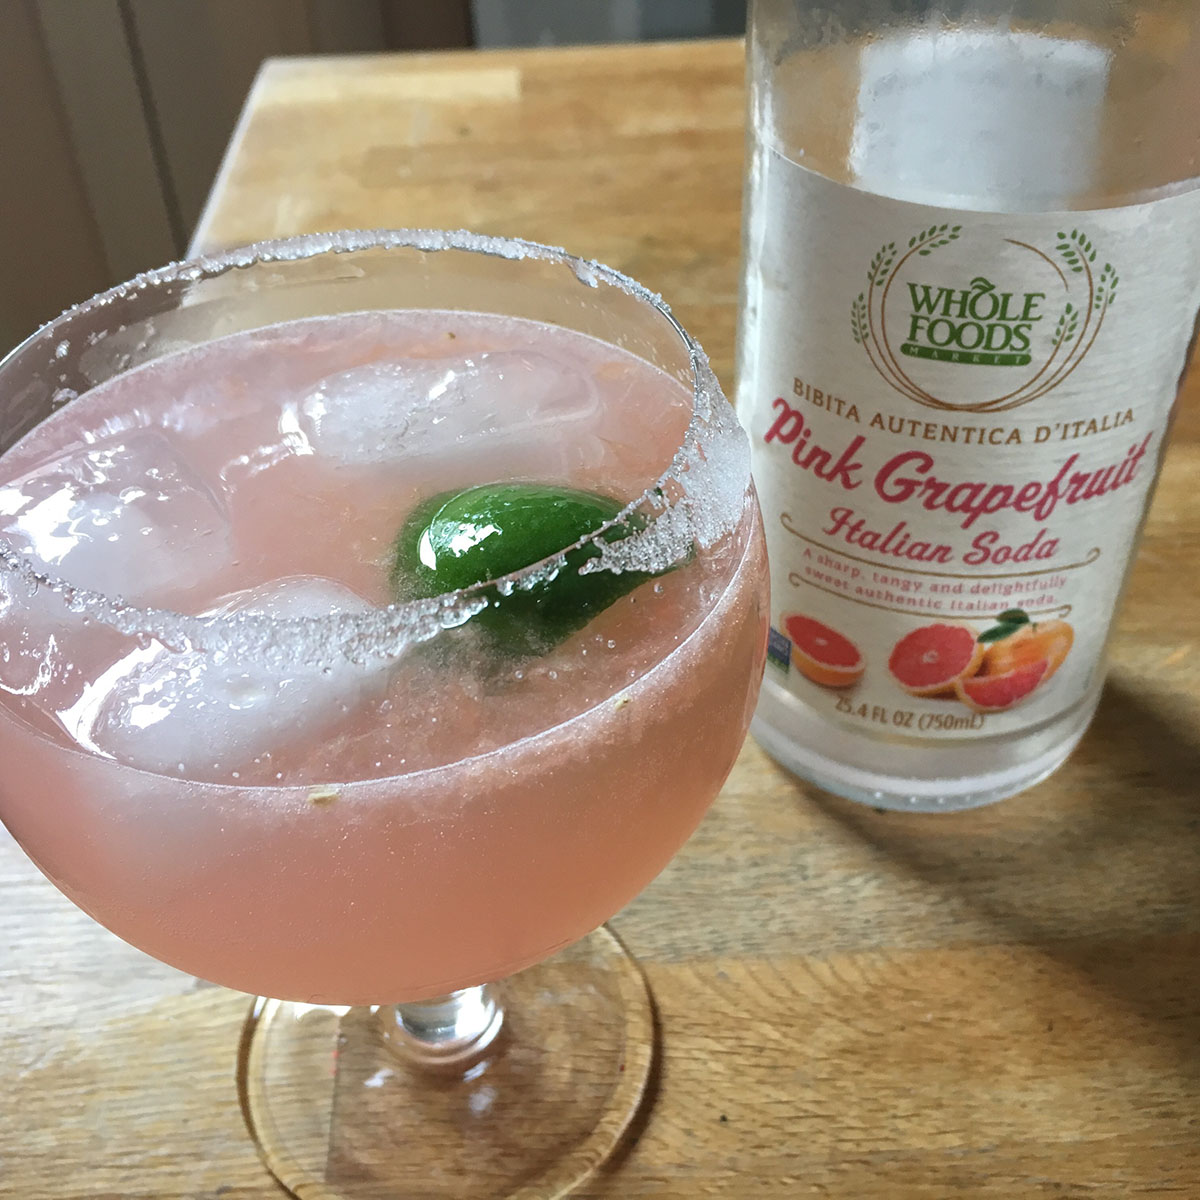 Whole Foods Market Pink Grapefruit Sparkling Italian Soda